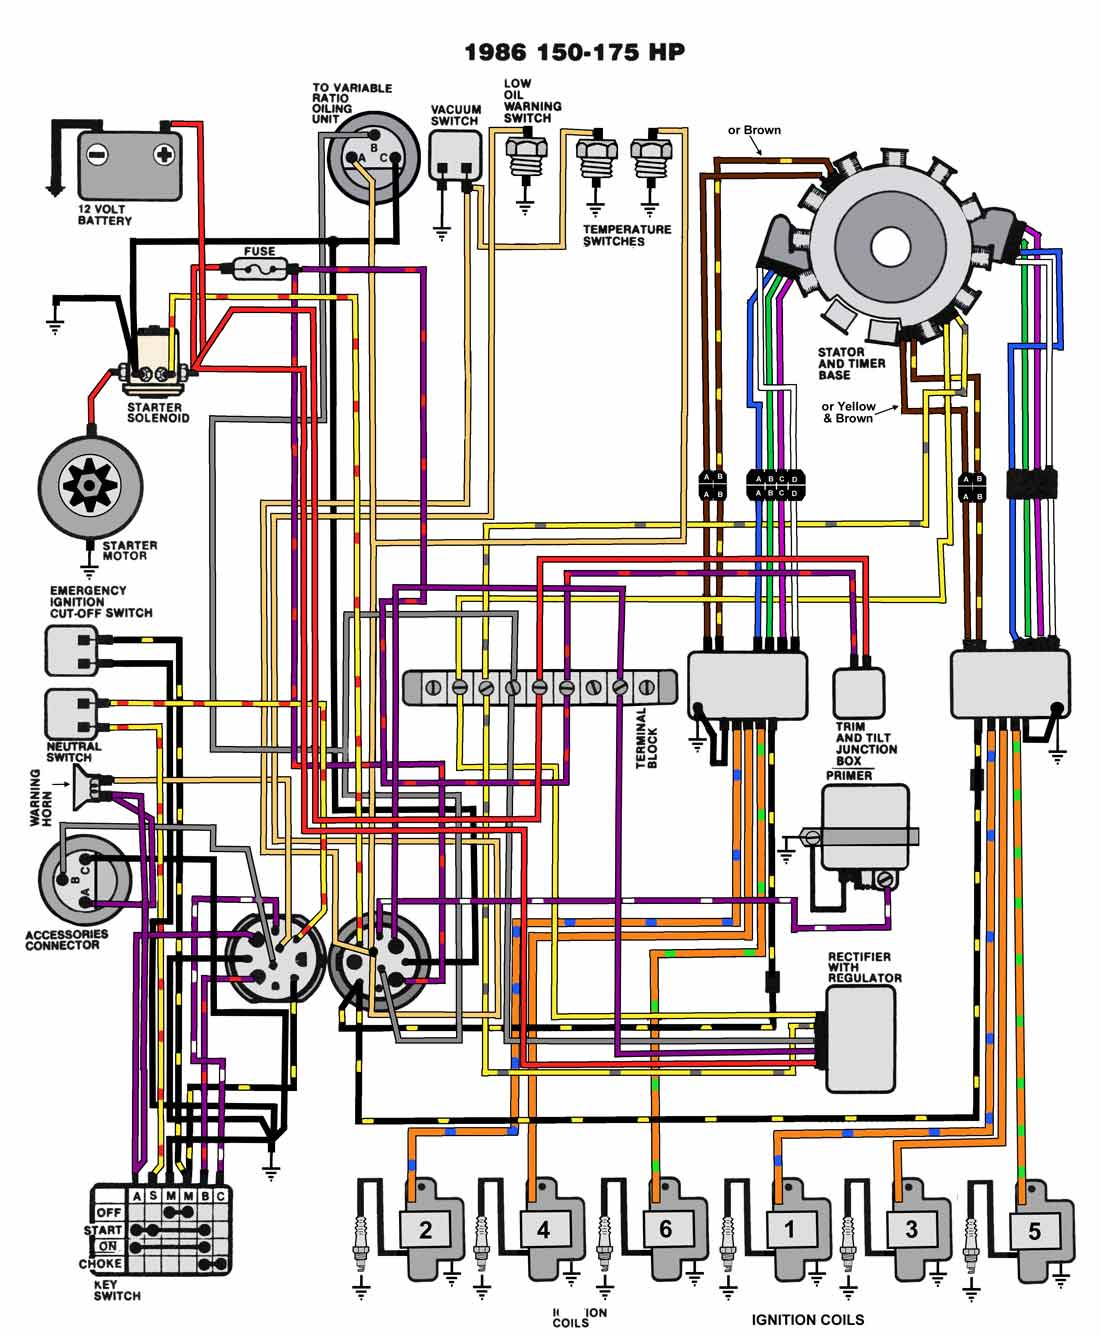 1986_150_175 mastertech marine evinrude johnson outboard wiring diagrams evinrude ignition switch wiring diagram at bayanpartner.co